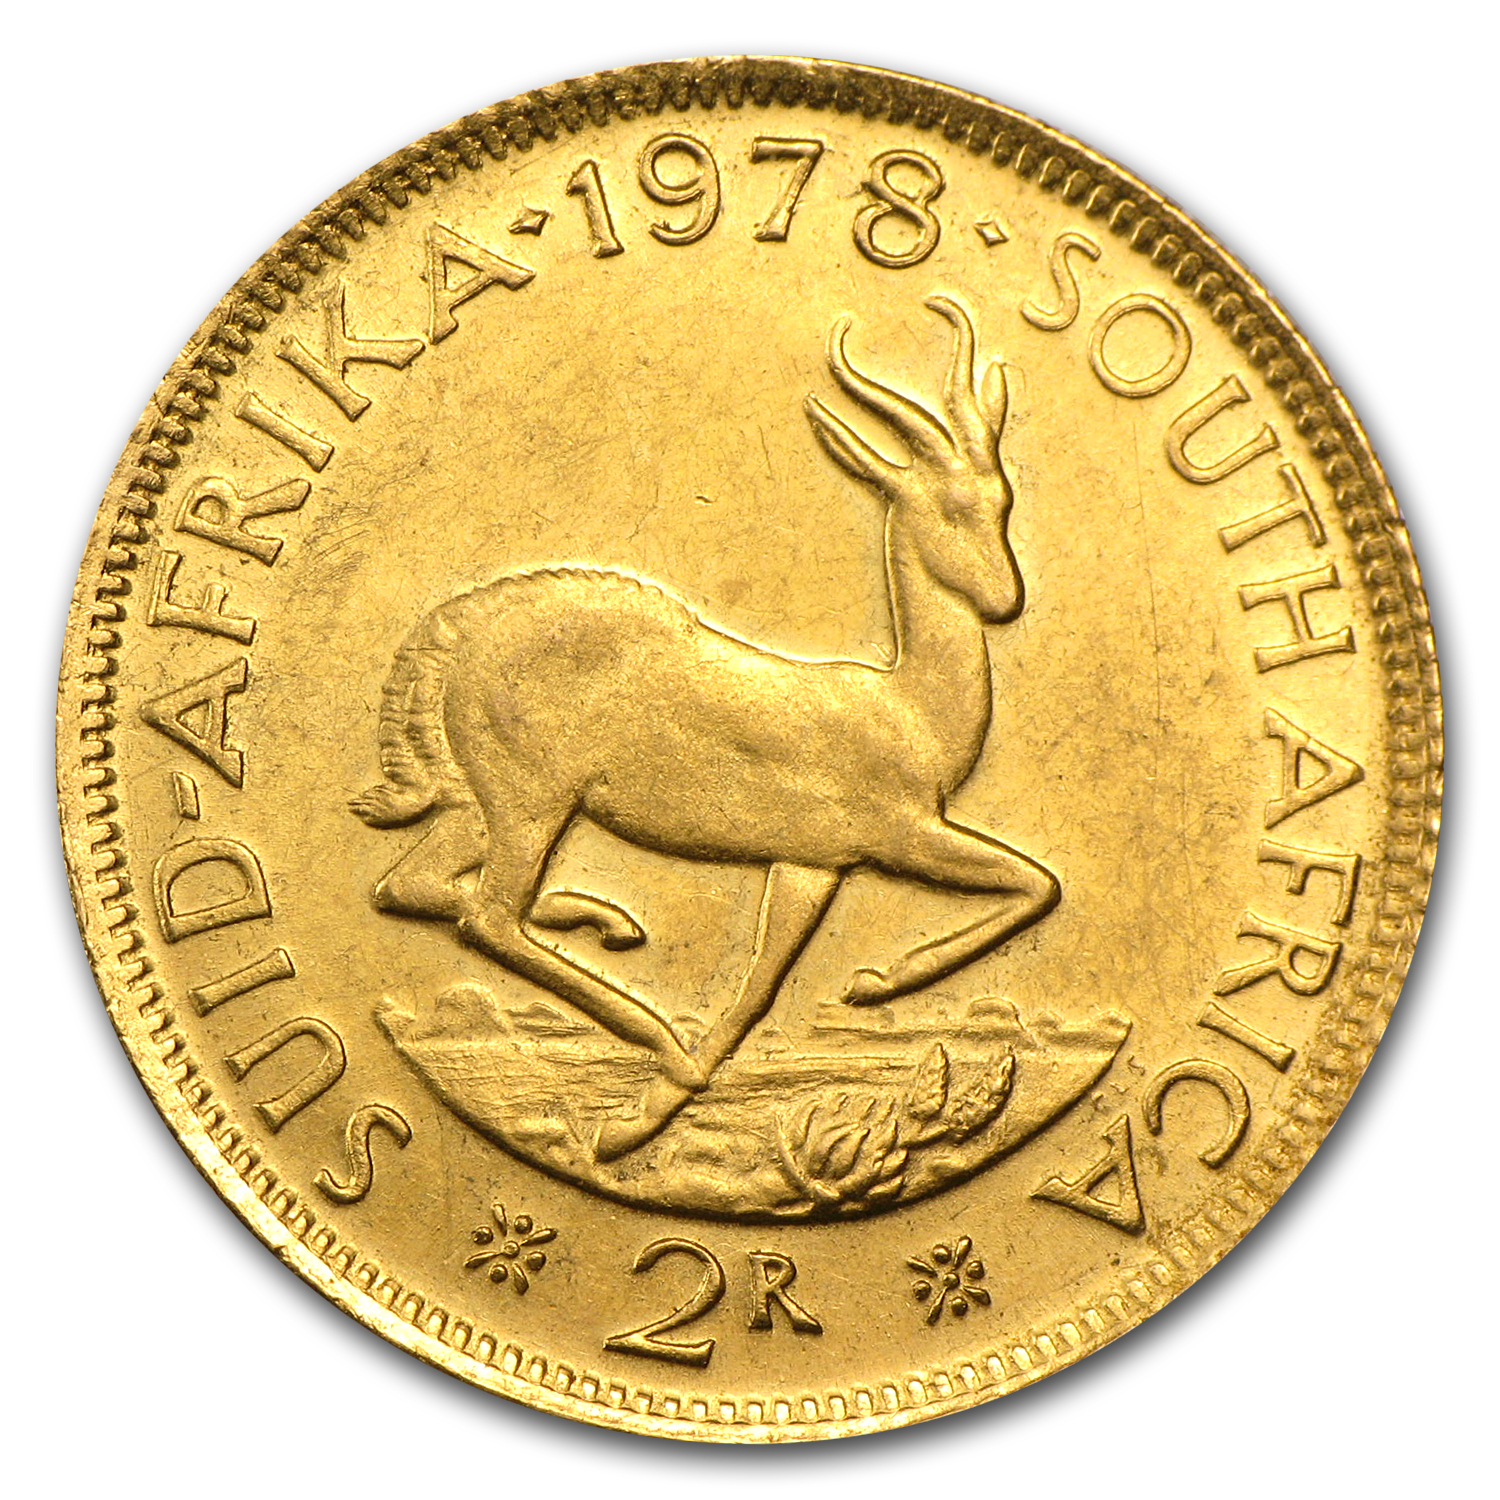 South African Gold 2 Rands (Abrasions)